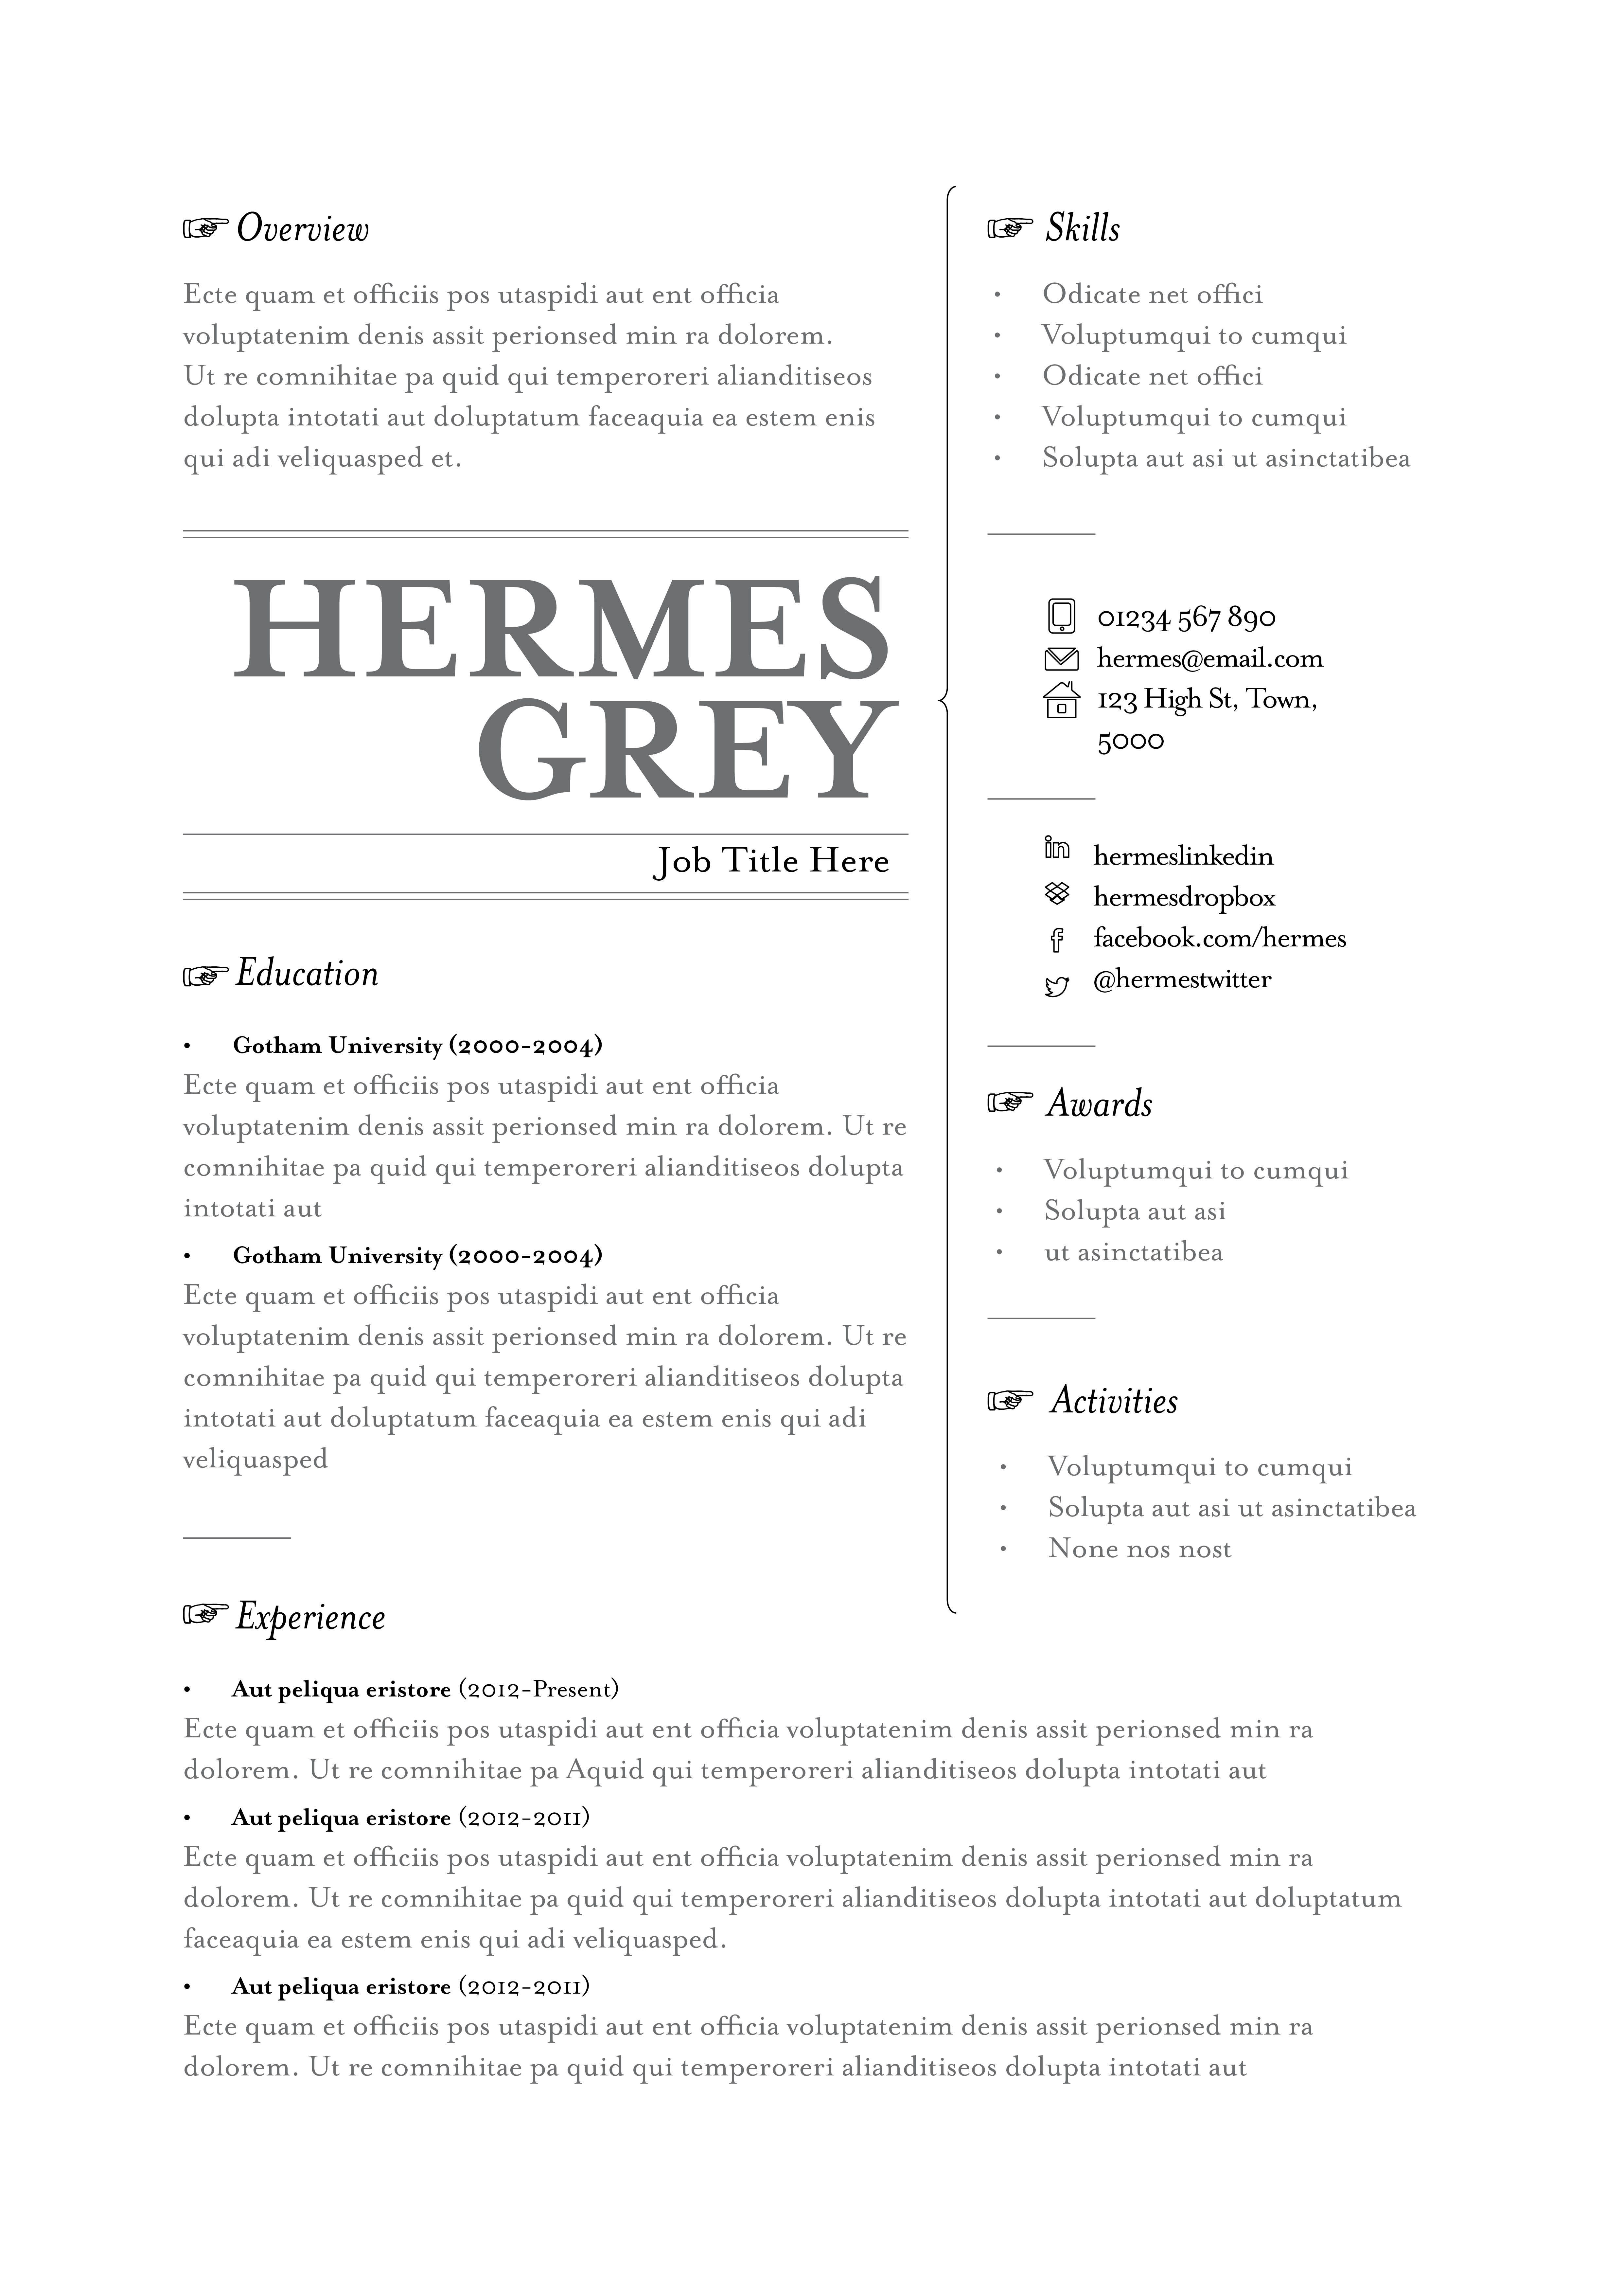 Functional Resume Template Australia.Our Hermes Resume Template Available In Grey Black And